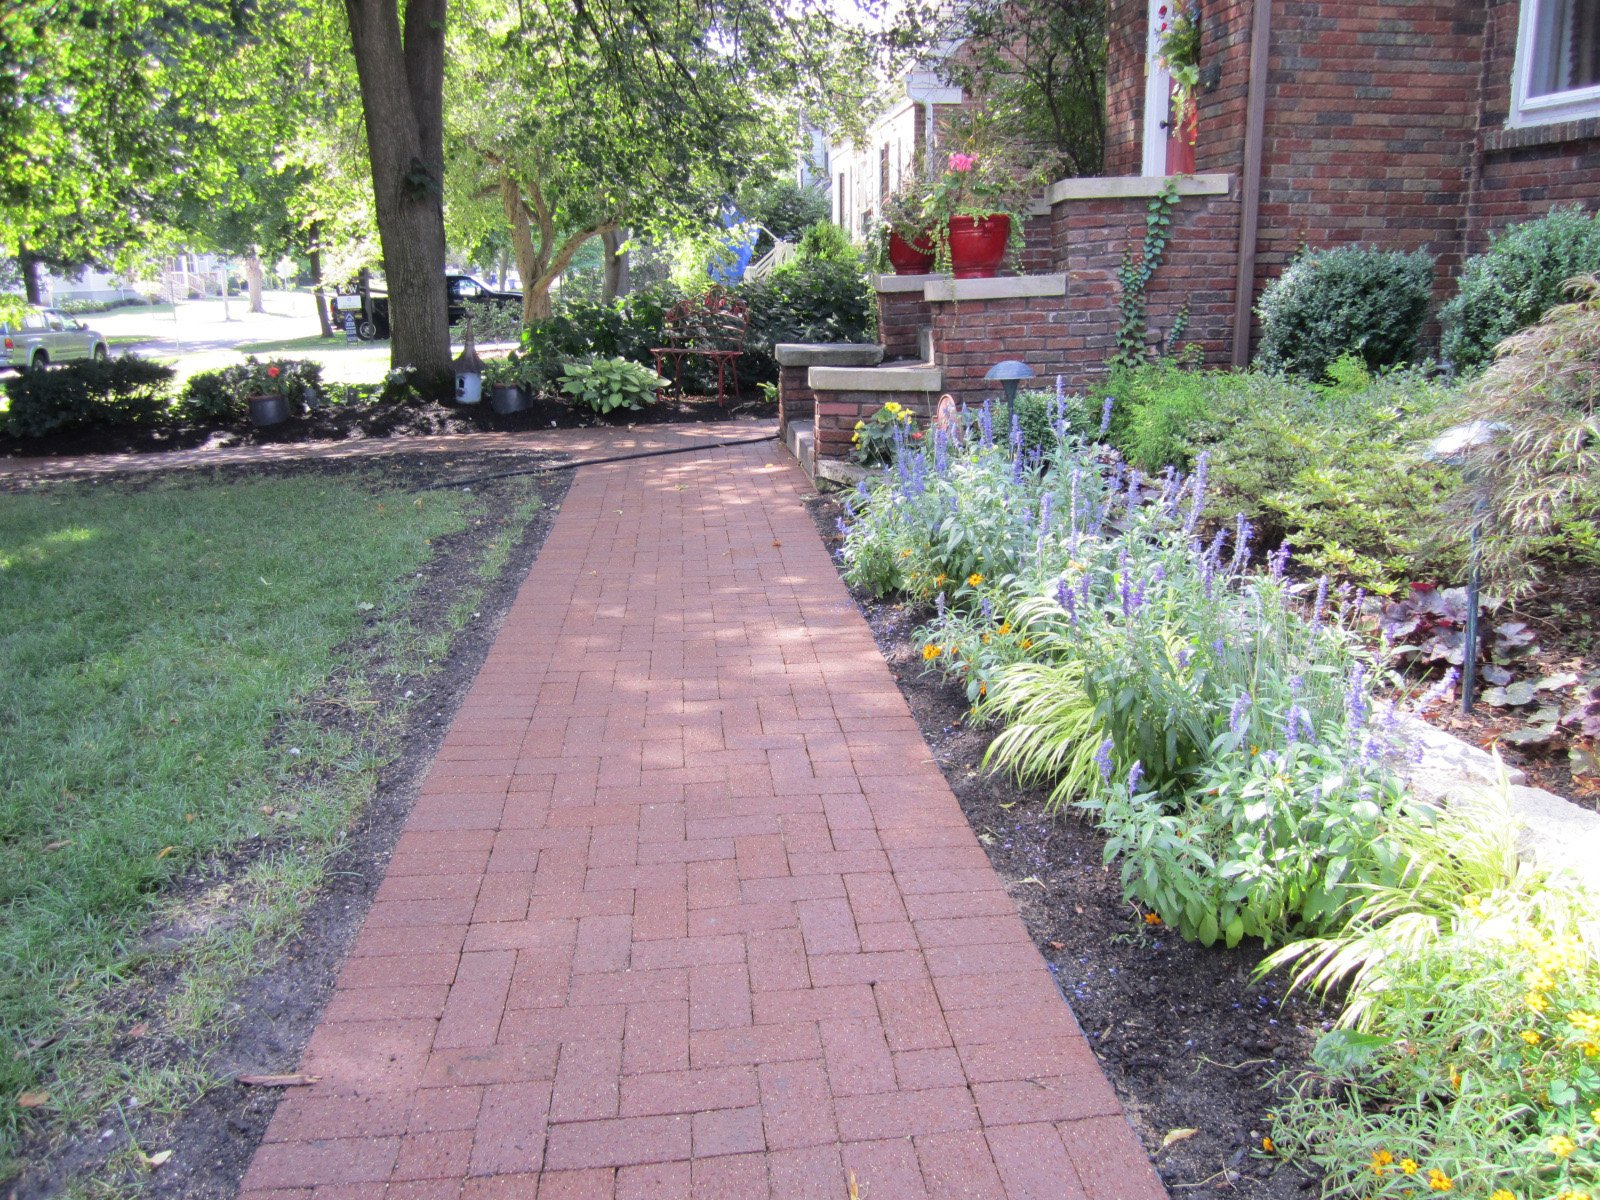 Anns Landscaping image 3